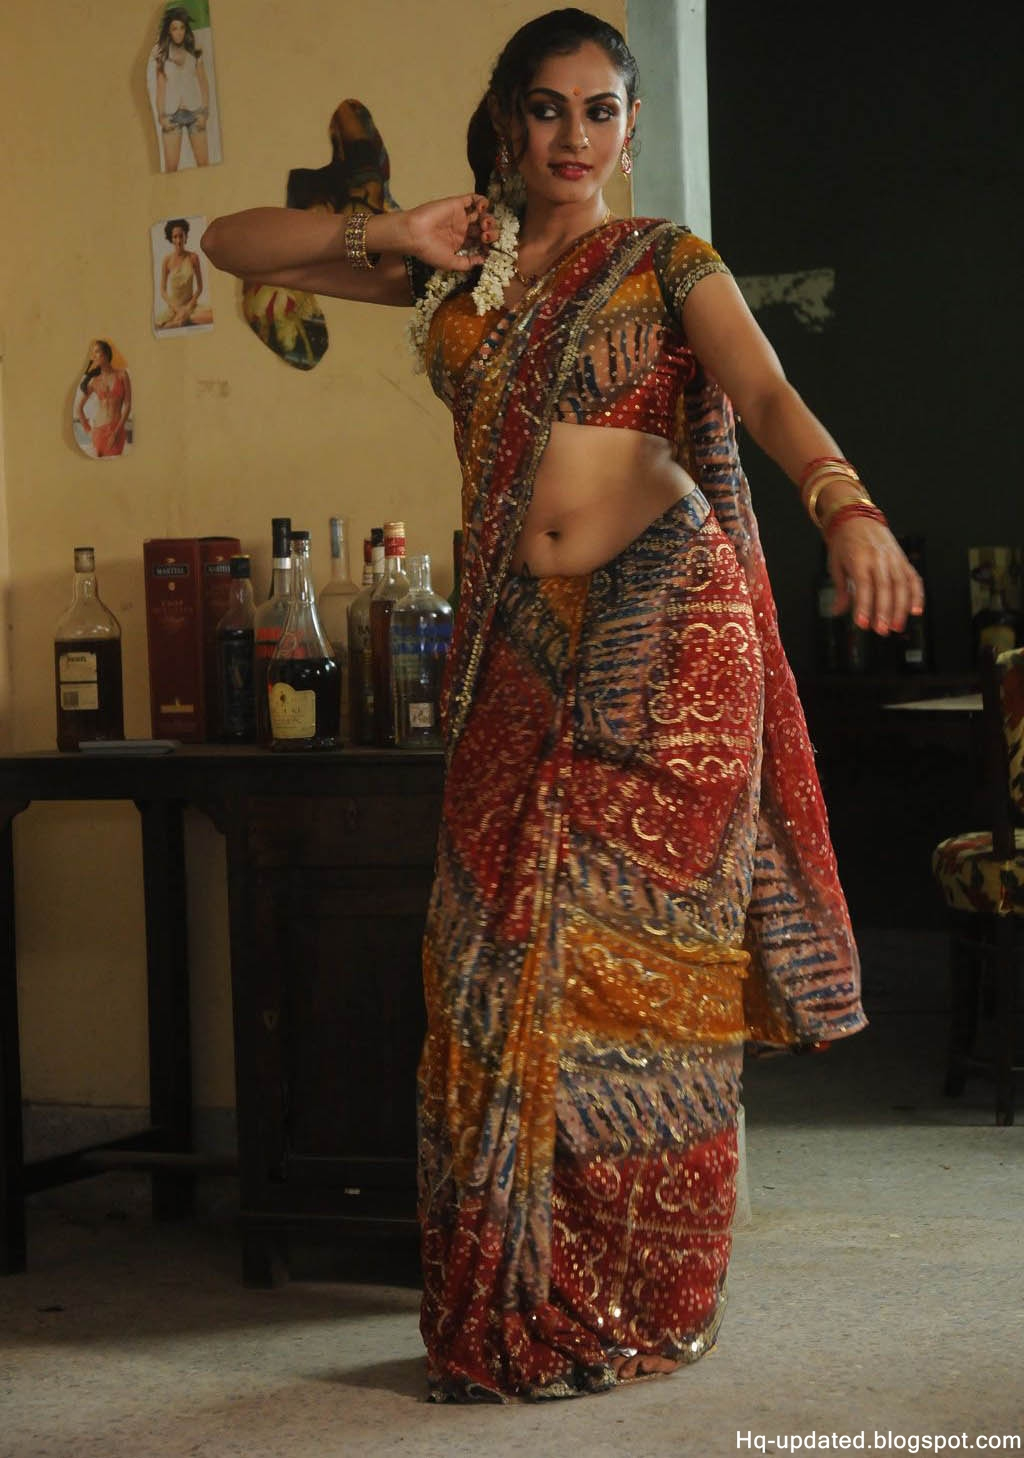 madurai milf women Read seduced my sexy lactating indian aunt in madurai - free sex story on xhamstercom hi friends, this is rajesh, presently 38 years working as an engineer in an mnc, and settled in chennai.